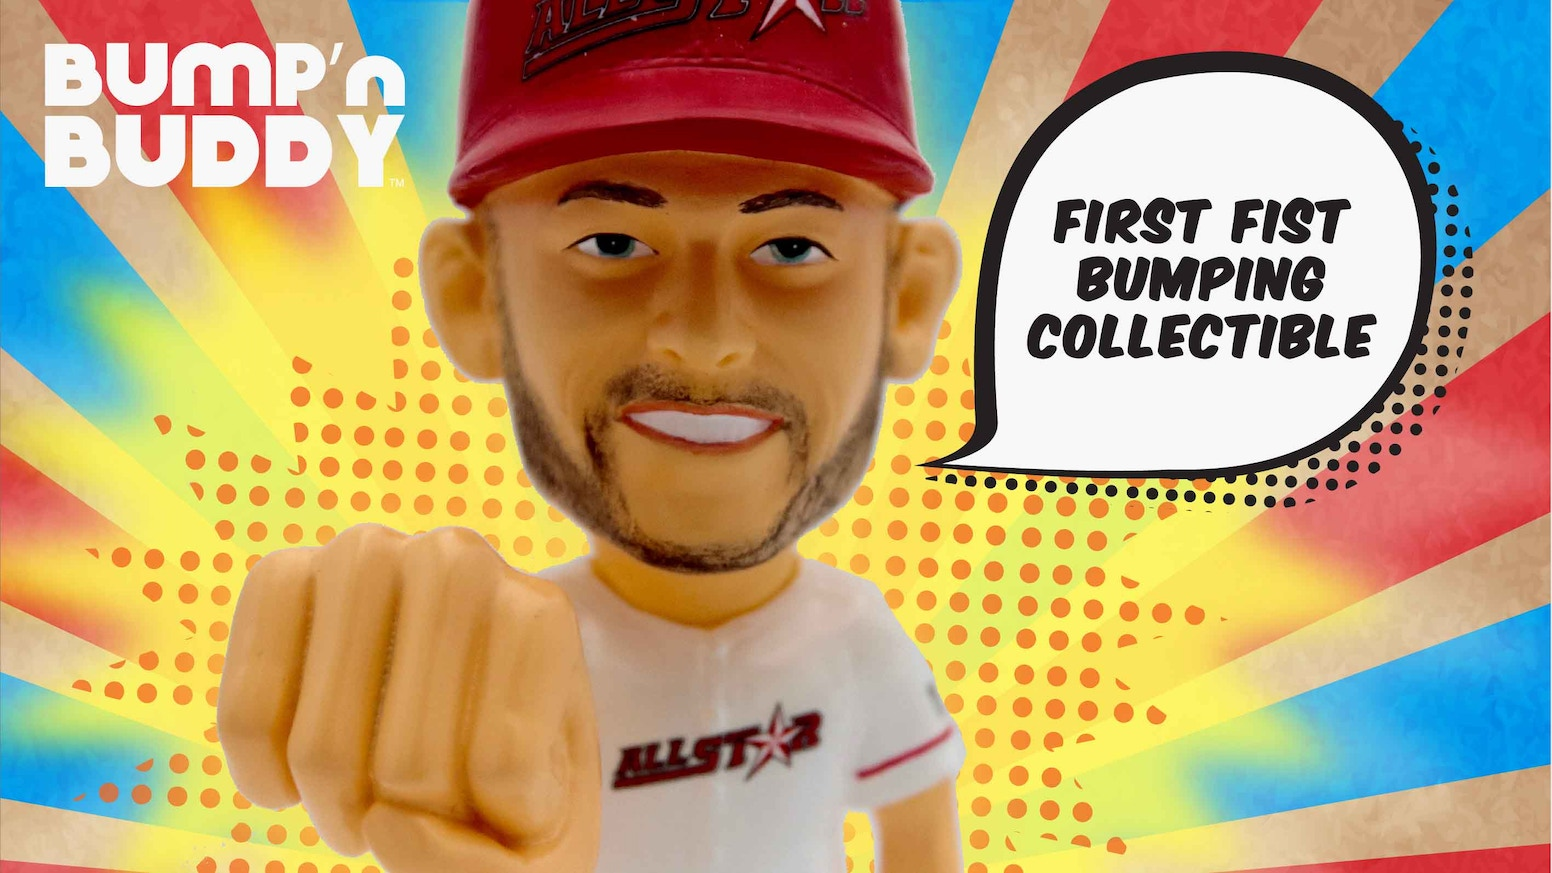 Order Your Very Own Bump'n Buddy Today! Be the envy of all your friends by purchasing the fist, er, FIRST BUMP'N BUDDY Called Joe Bumpy! Only $20 and FREE Shipping! Click below!